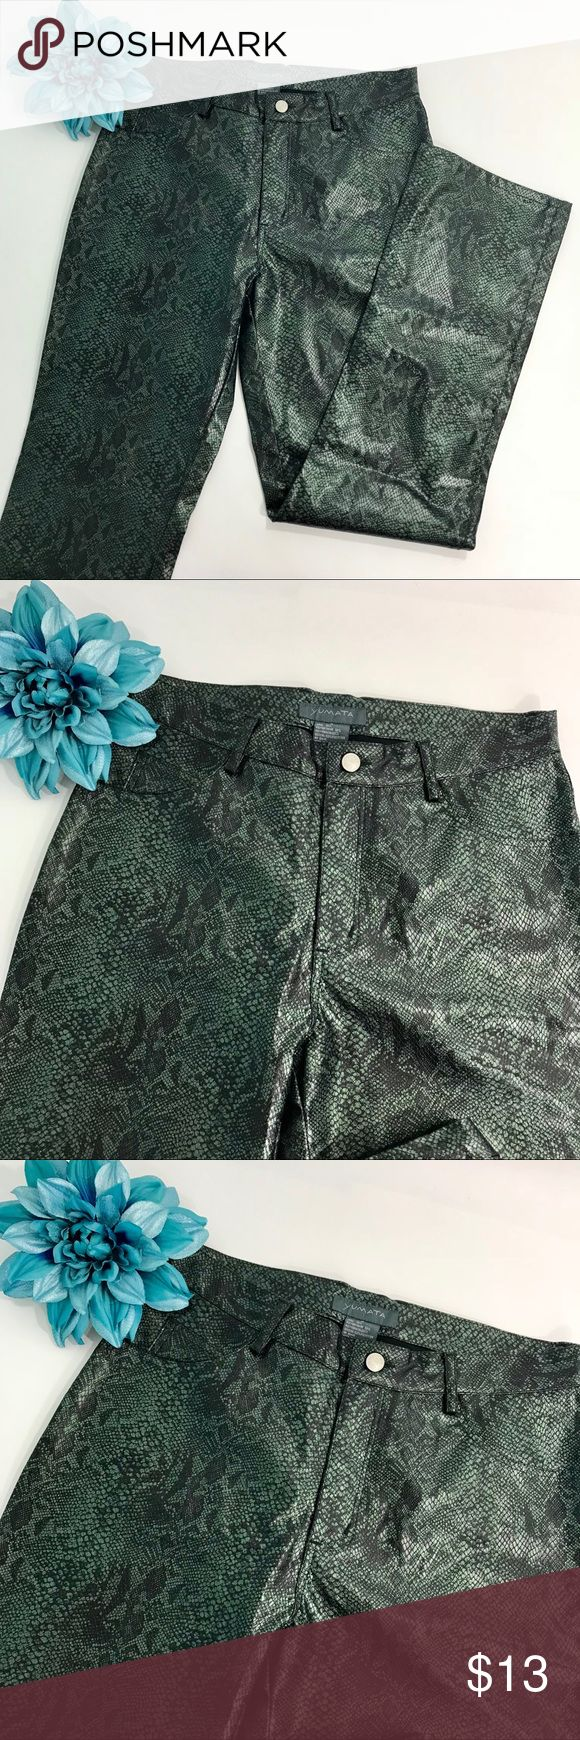 """Yumata Brand Began Leather Green Snake Print Pants Yumata Brand vegan leather green snake print pants. Very sexy and flattering on! Straight leg boot cut.   Size: 13  Measurements: waist 16"""", rise 10"""", inseam 31"""".  Please measure one of your own garments to compare for size.  Shipping: I normally ship in one day (maybe 2).   Please check out all the pictures above because they are part of the description. Thank you for looking and I invite you to check out my other listings for more deals…"""